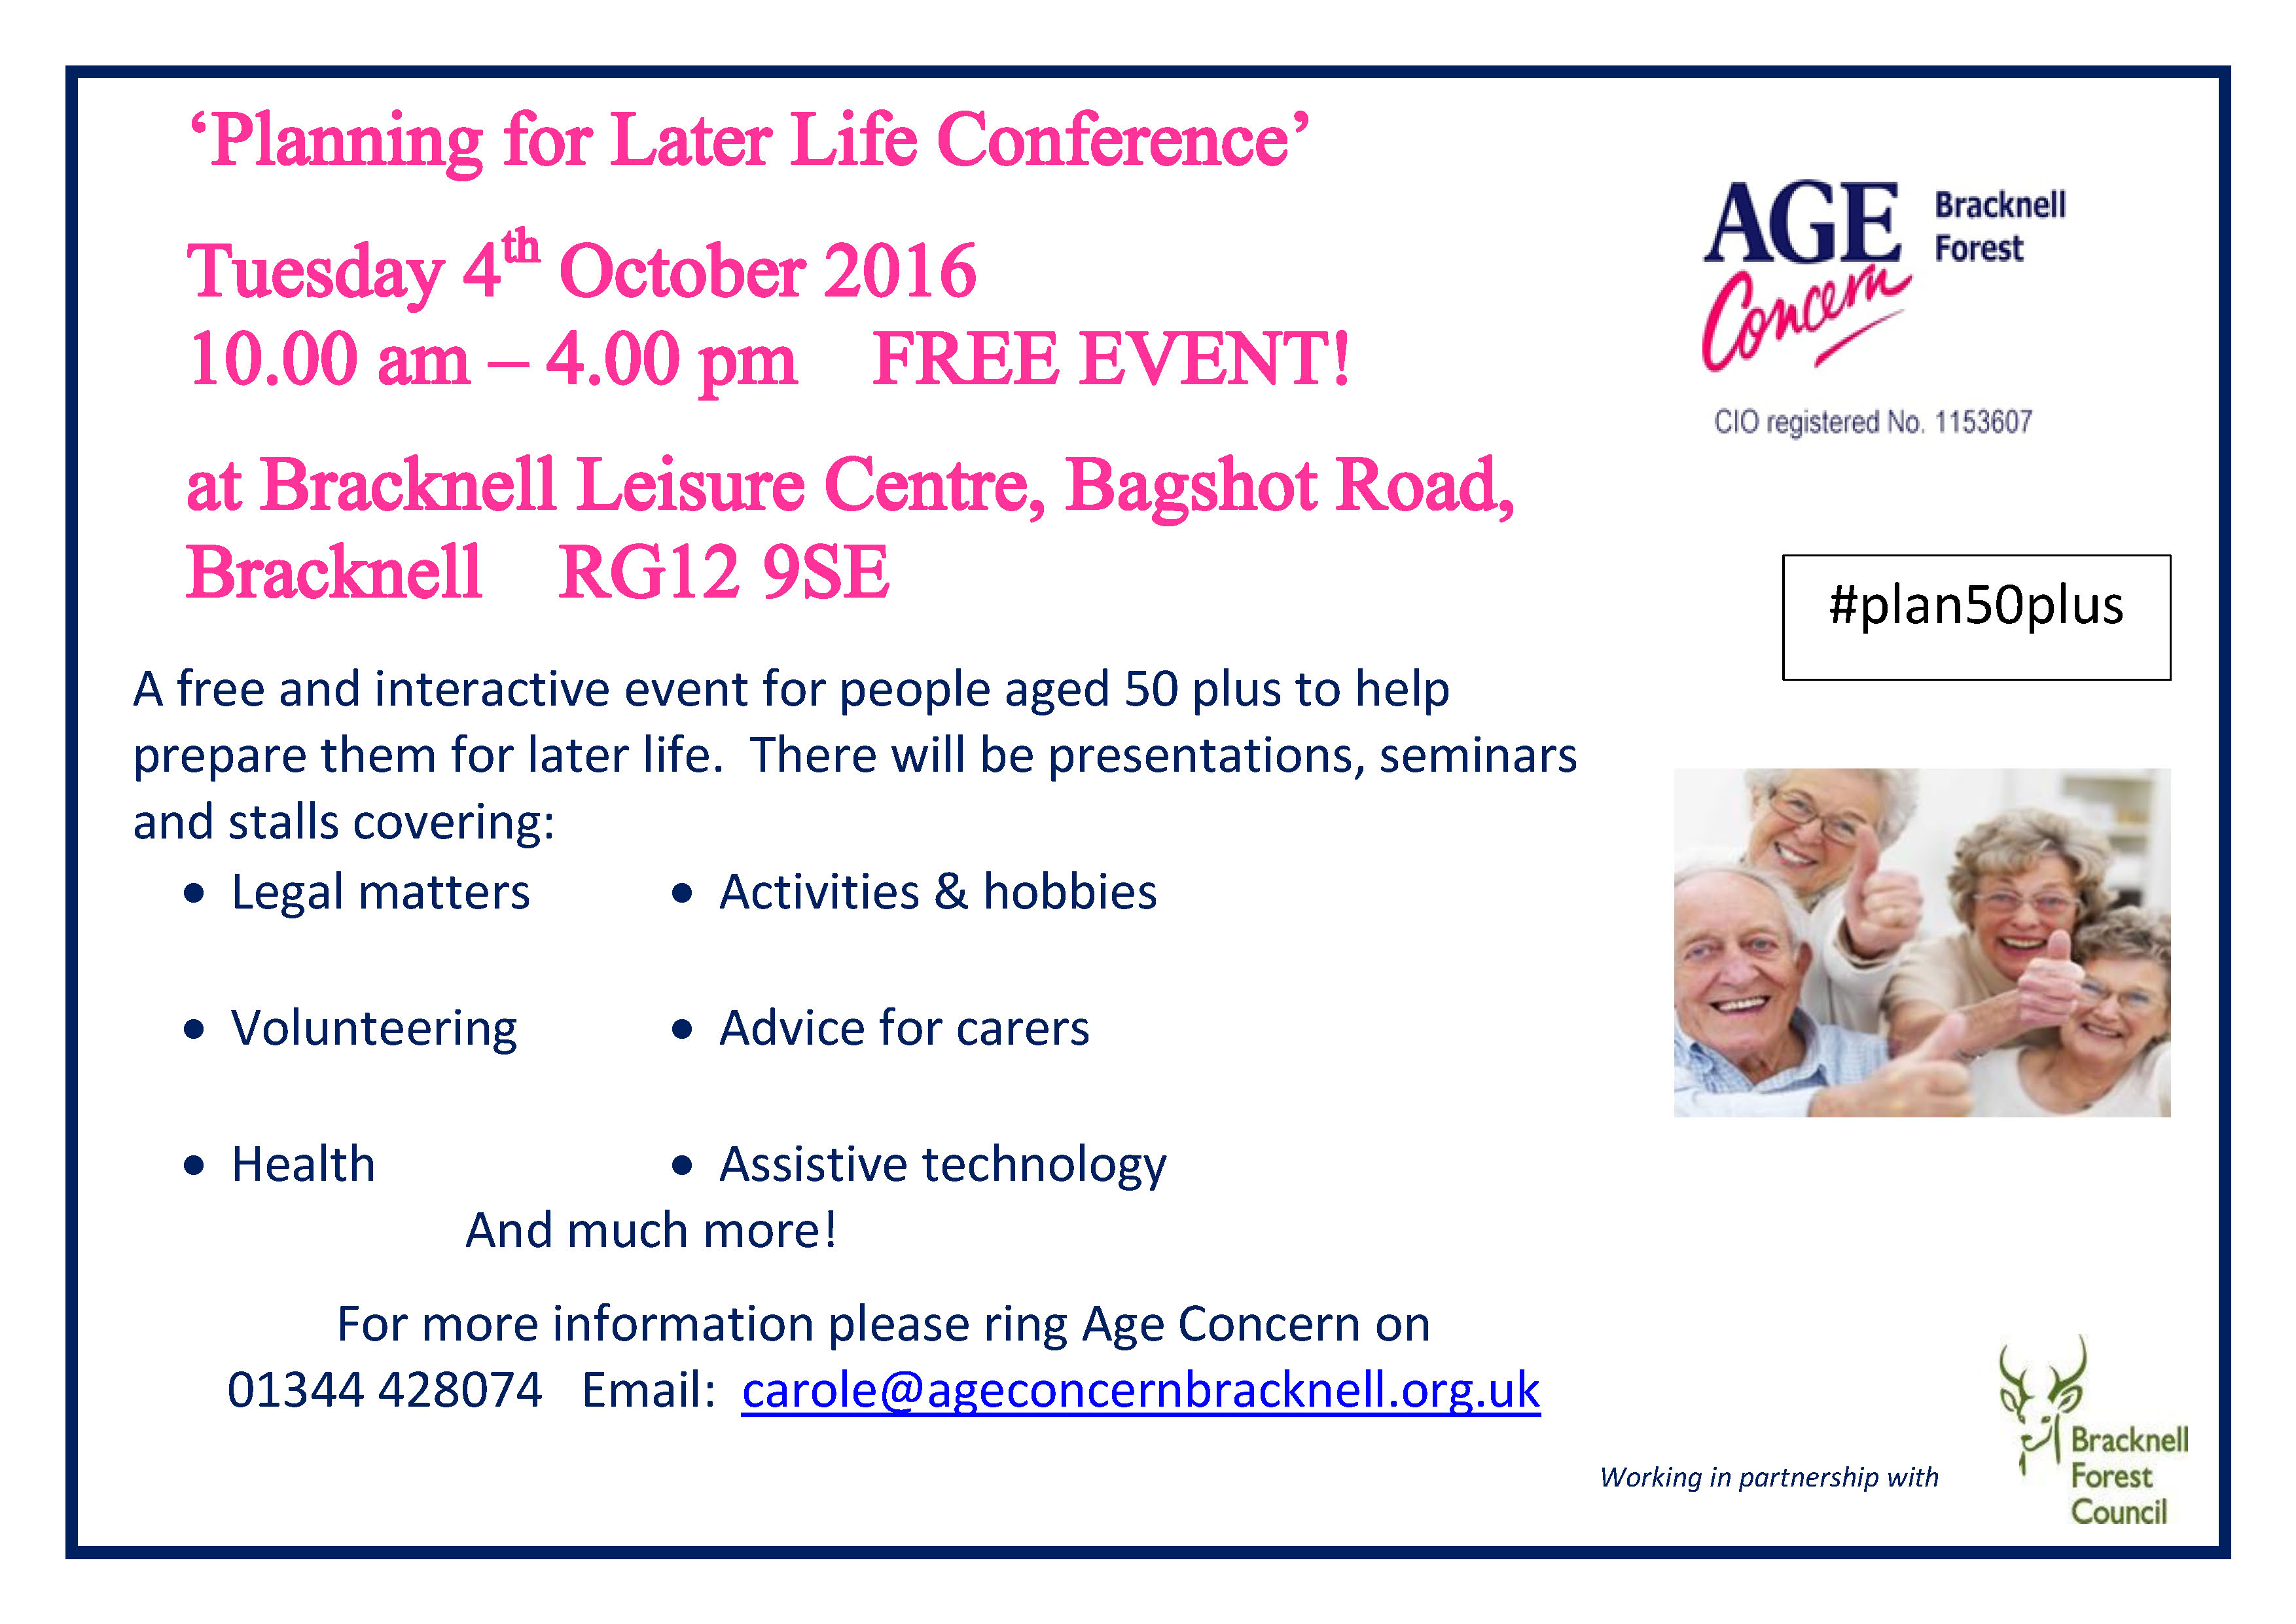 Age Concern - Planning for Later Life